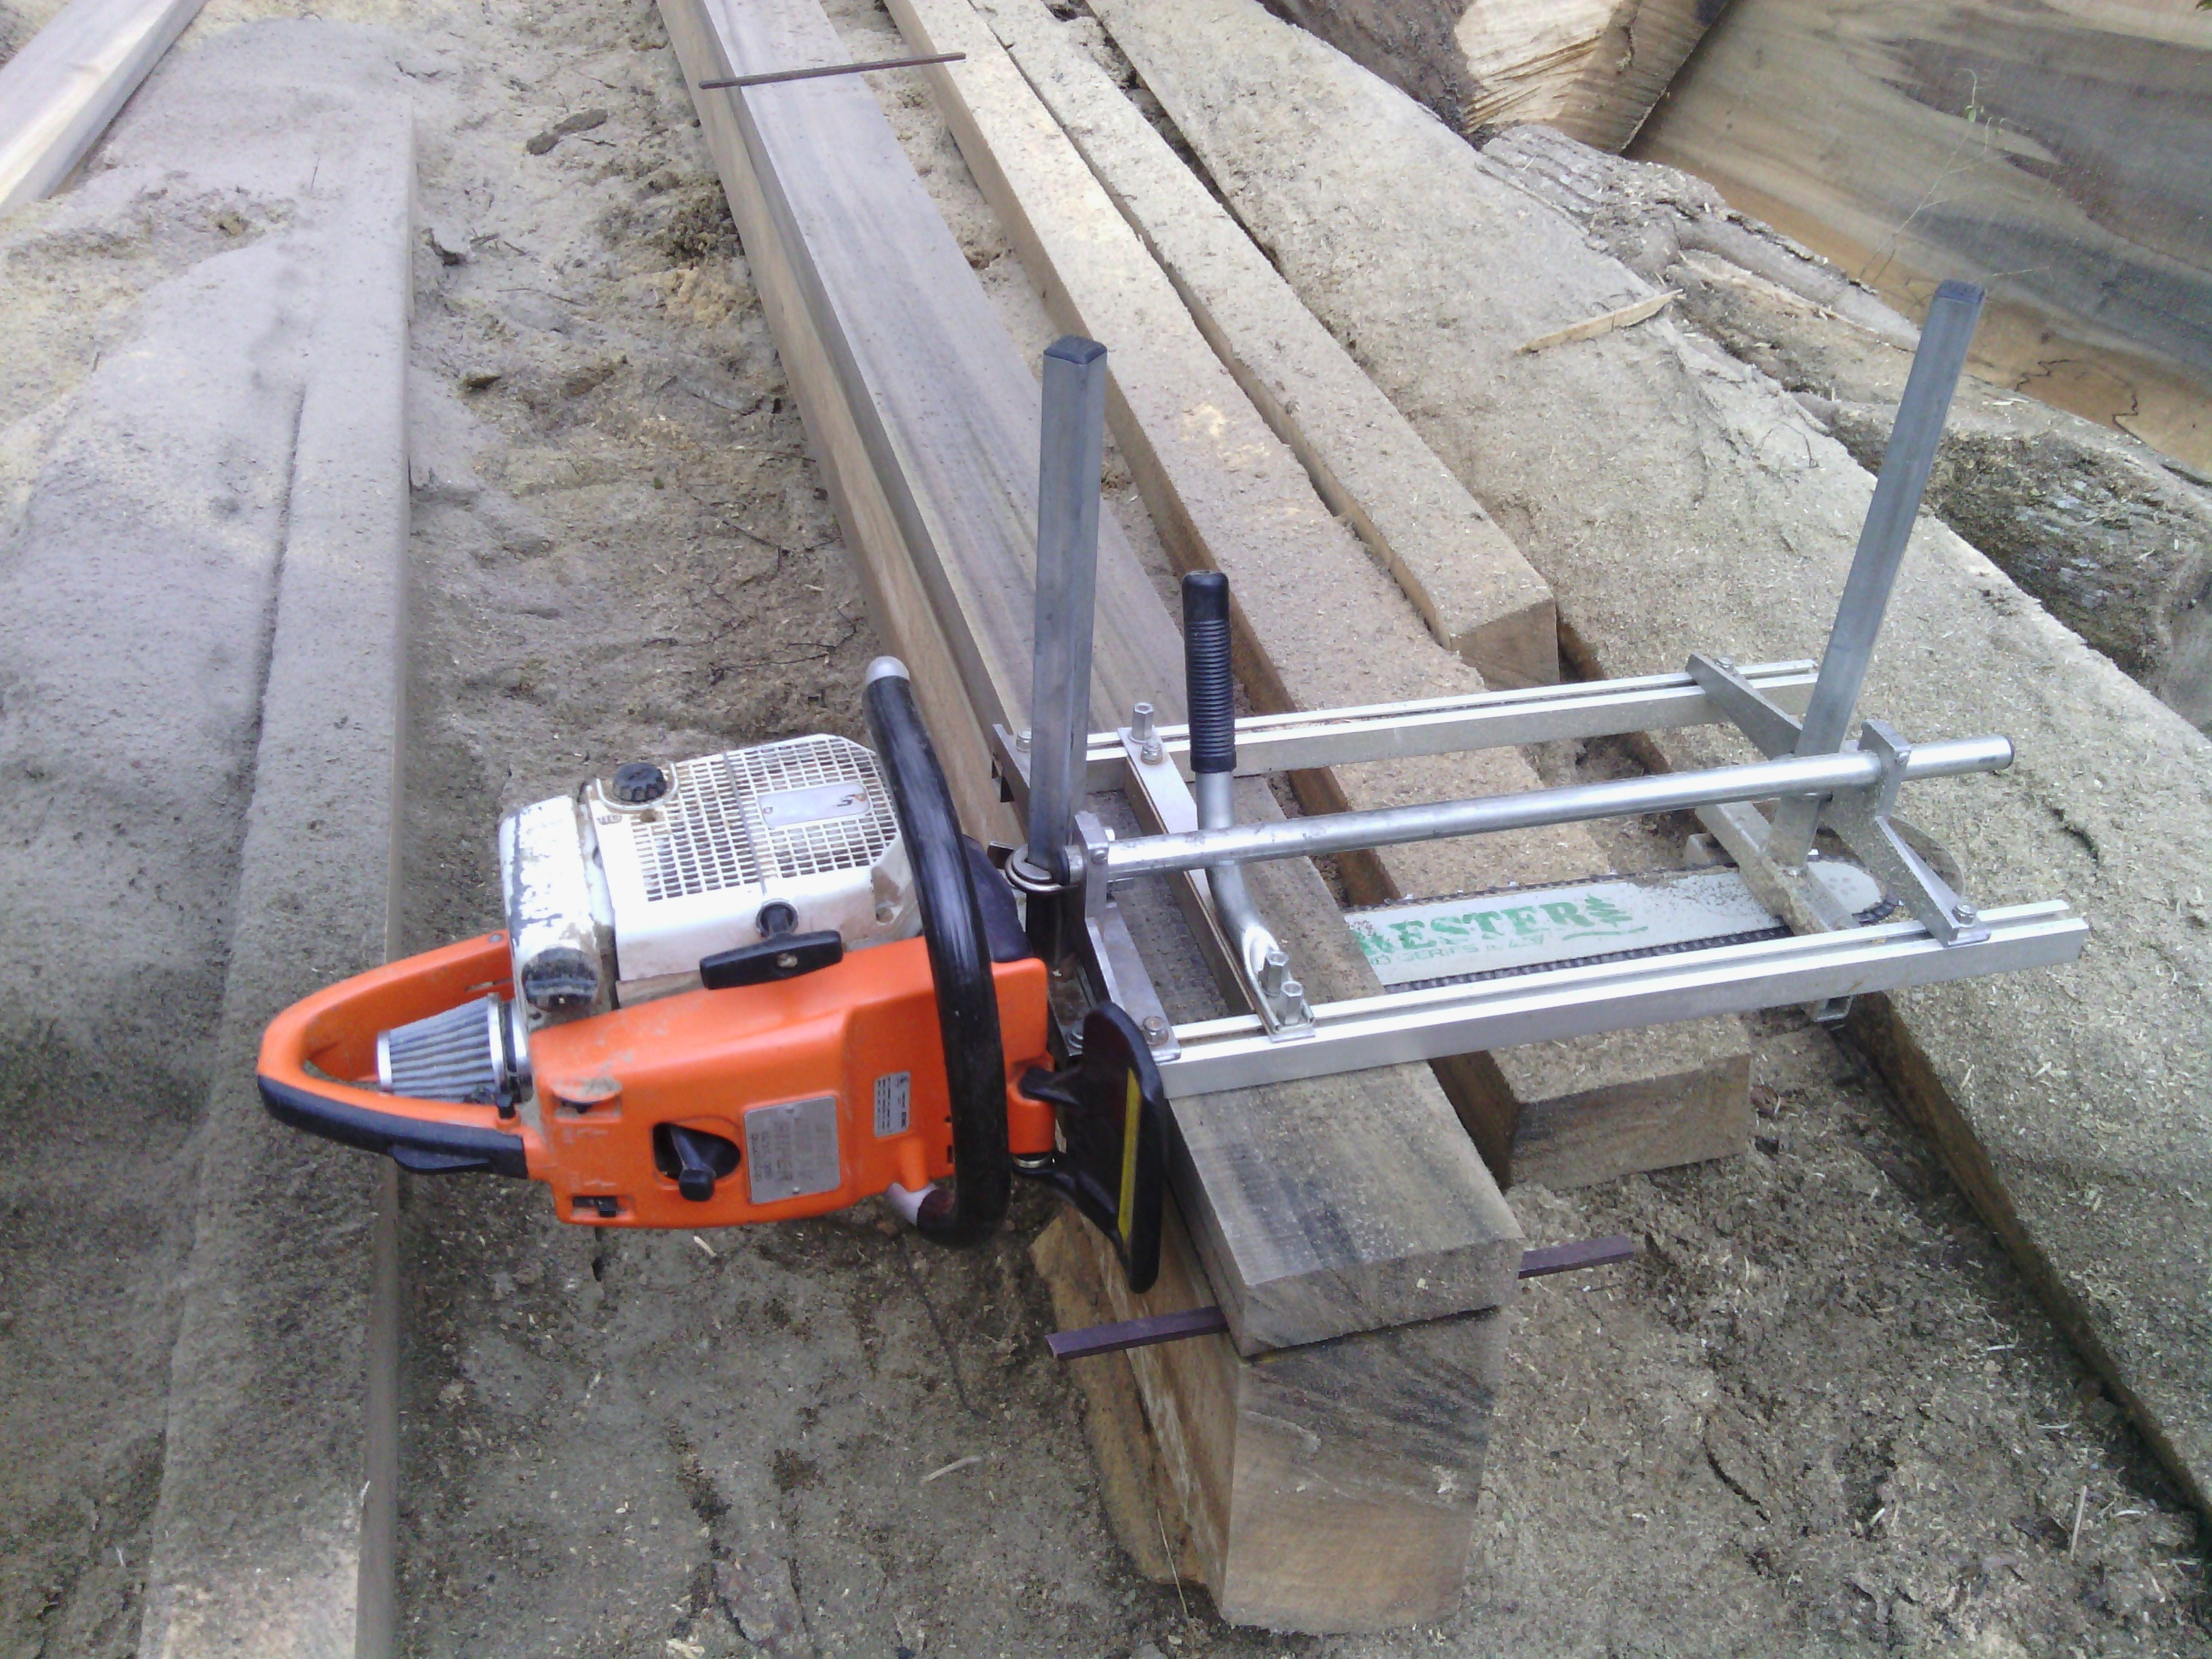 What are some common attachments and accessories for a chainsaw?